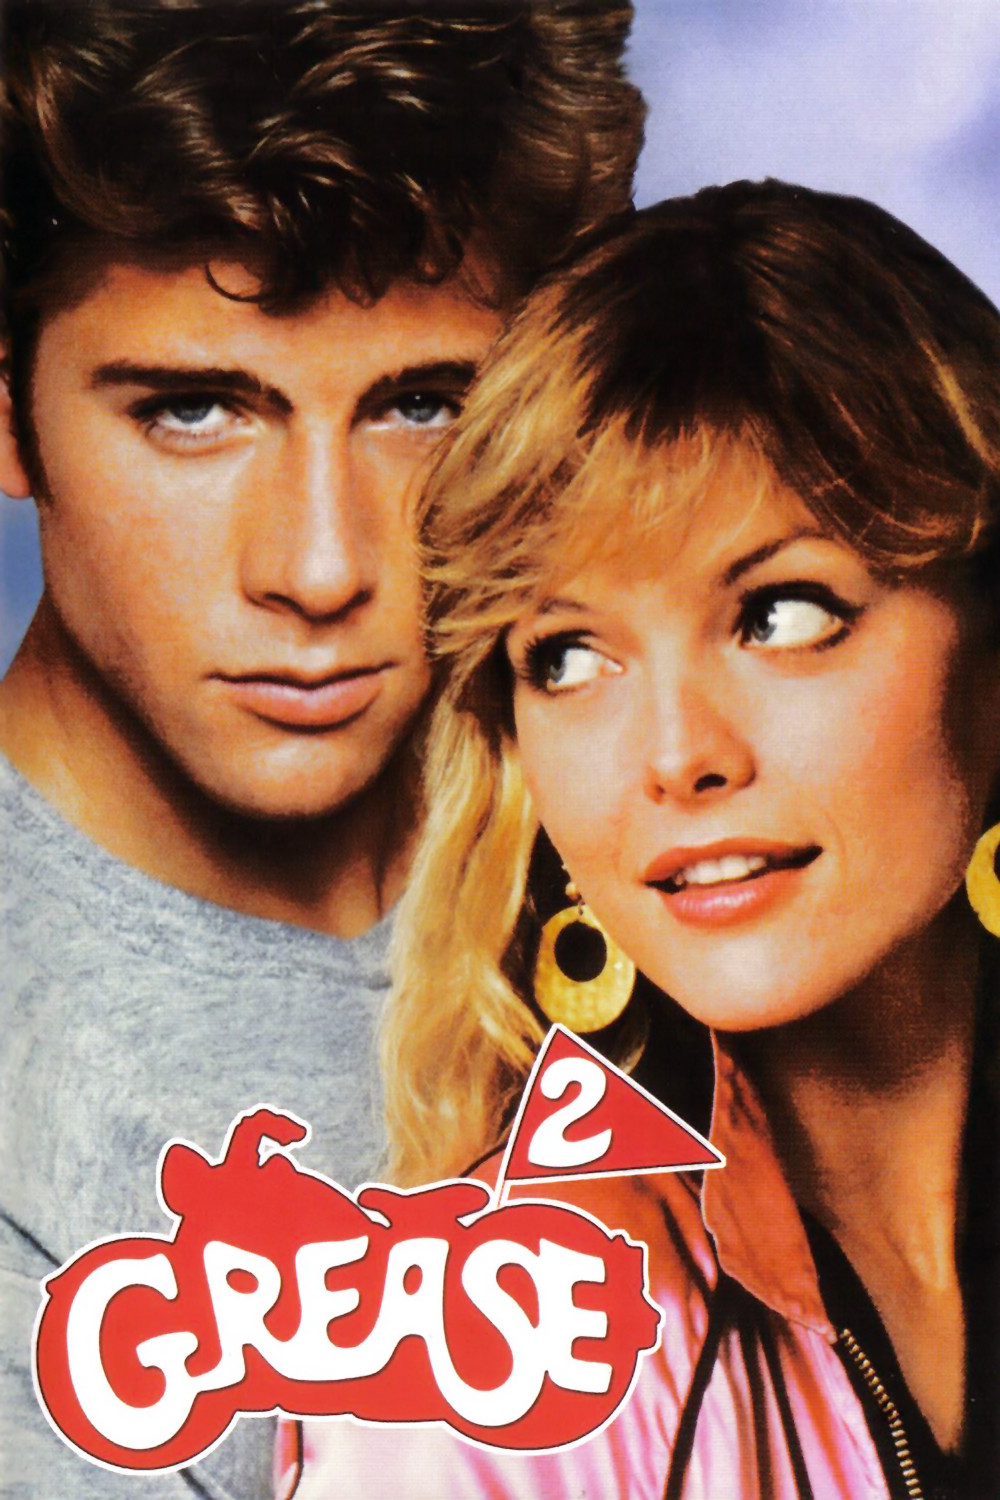 Grease 2' Cast Then and Now!